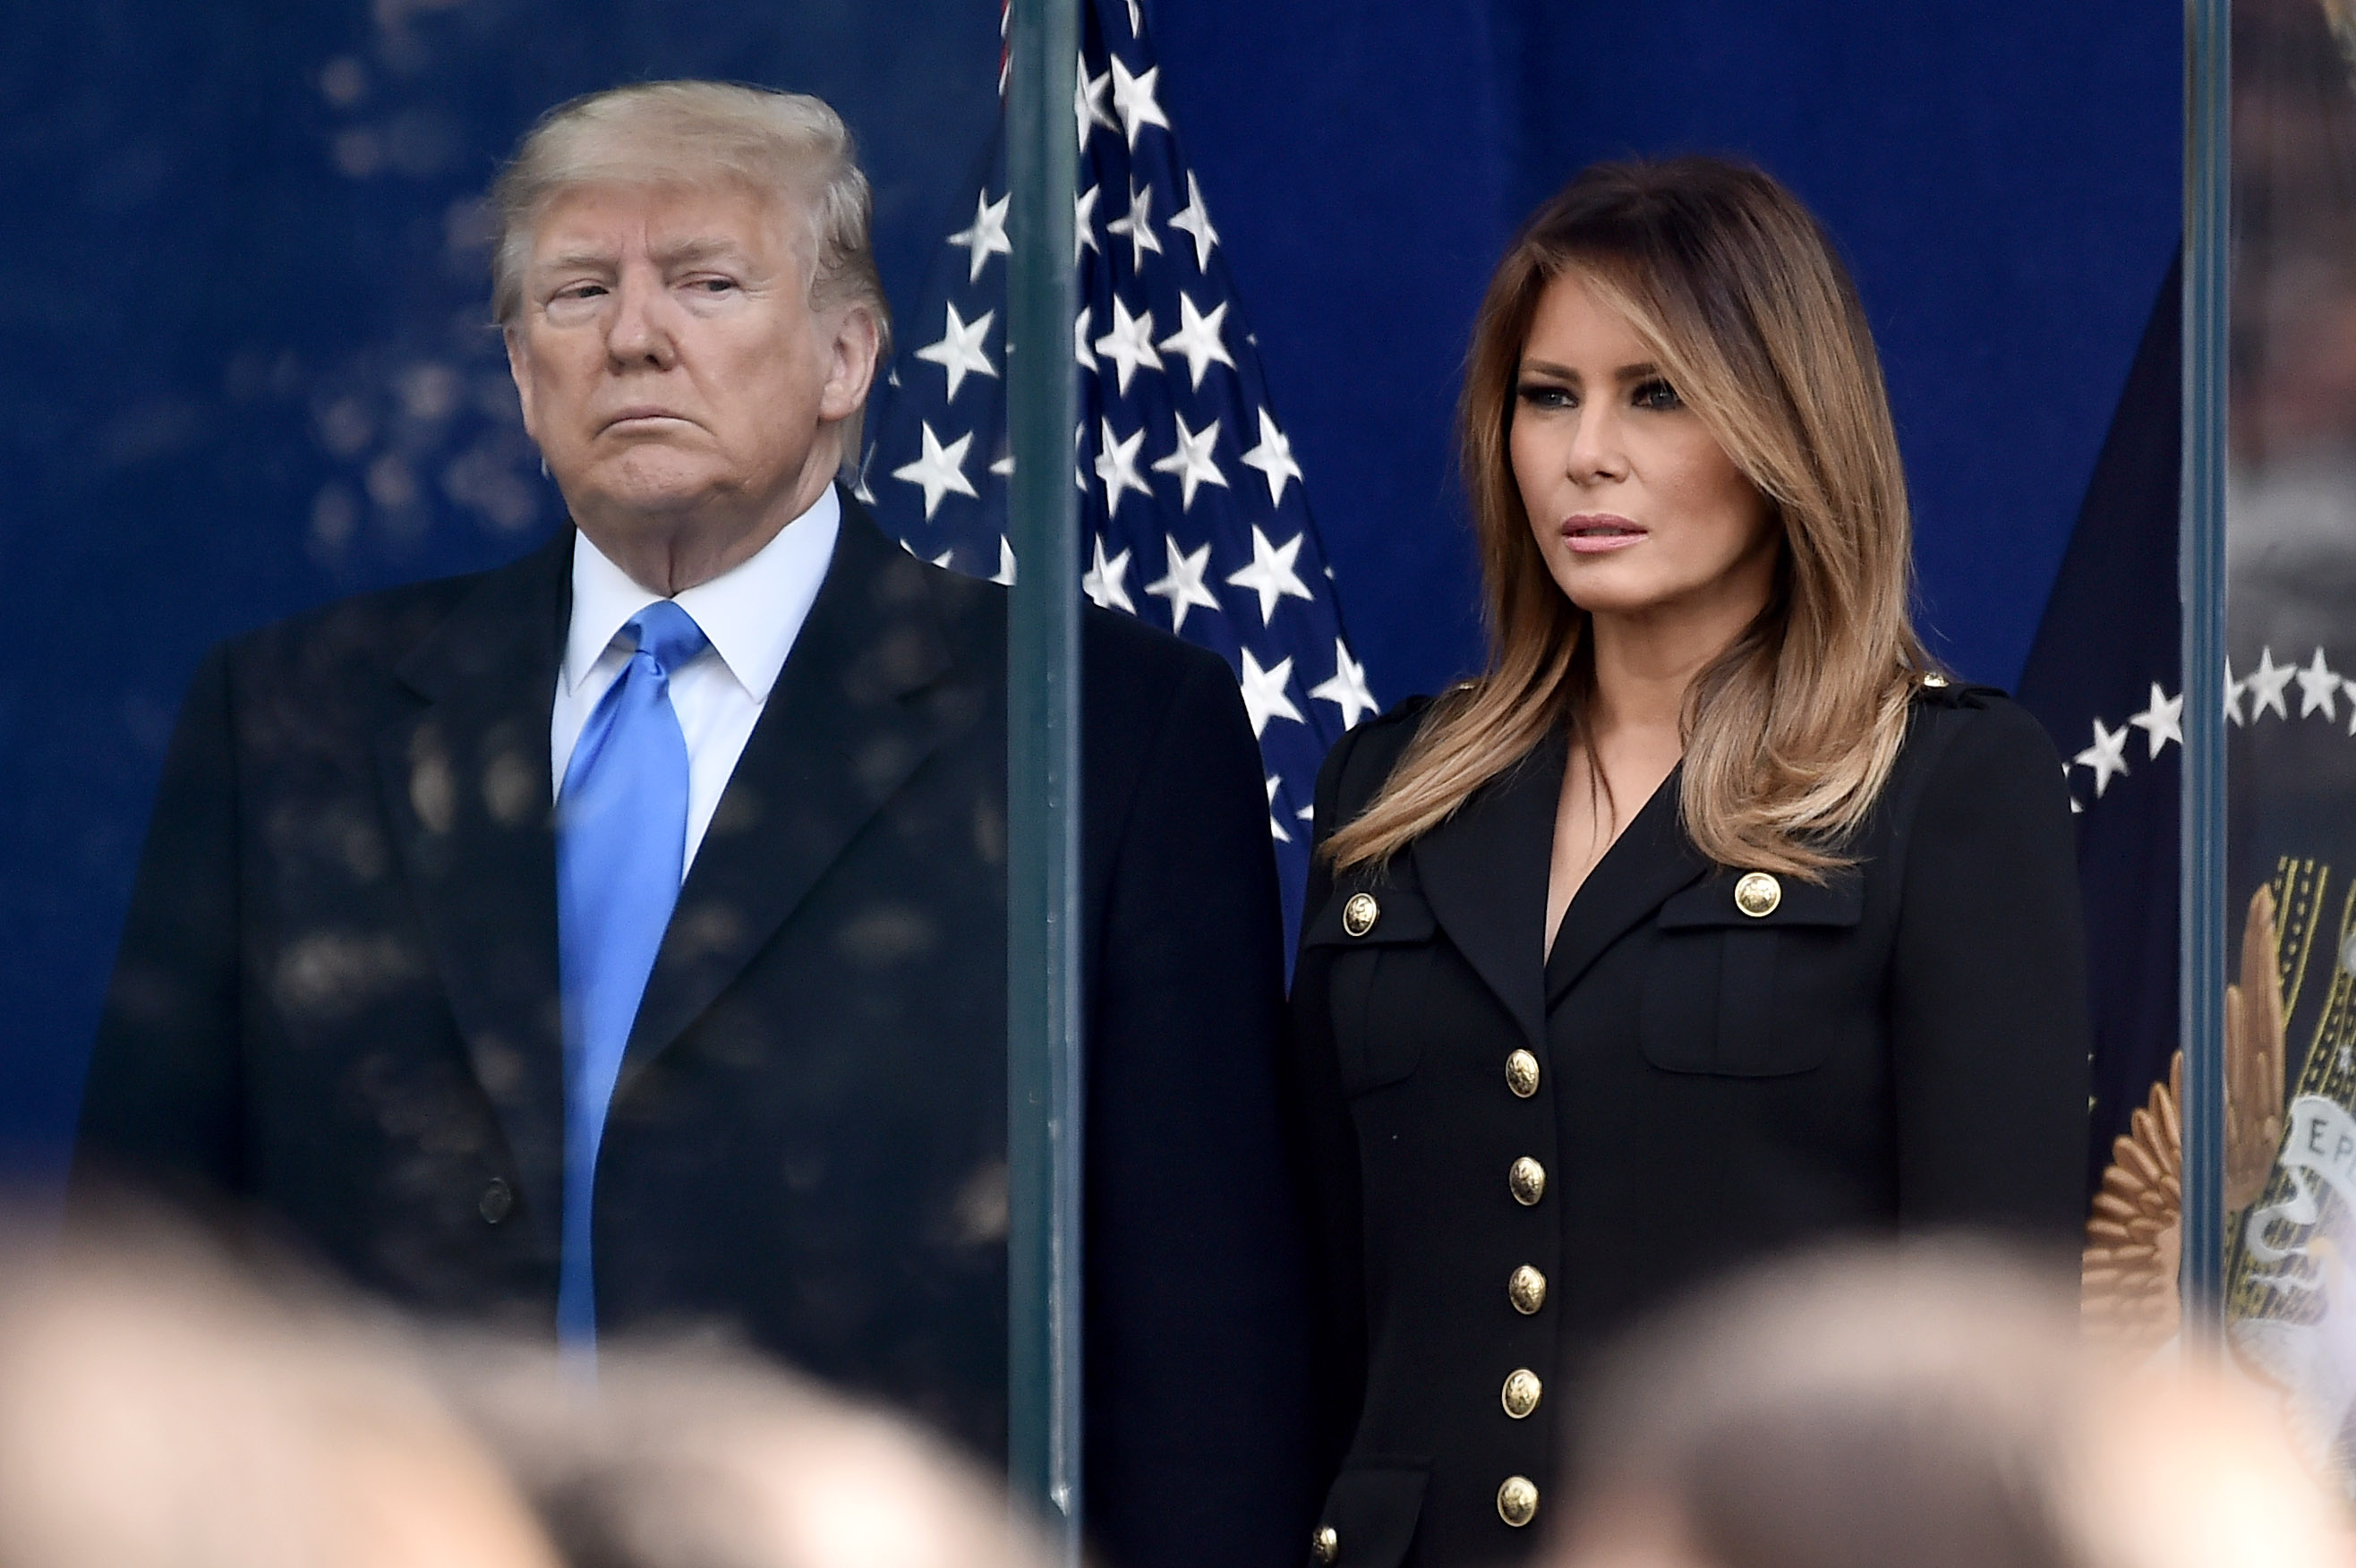 President Donald Trump and First Lady Melania Trump.